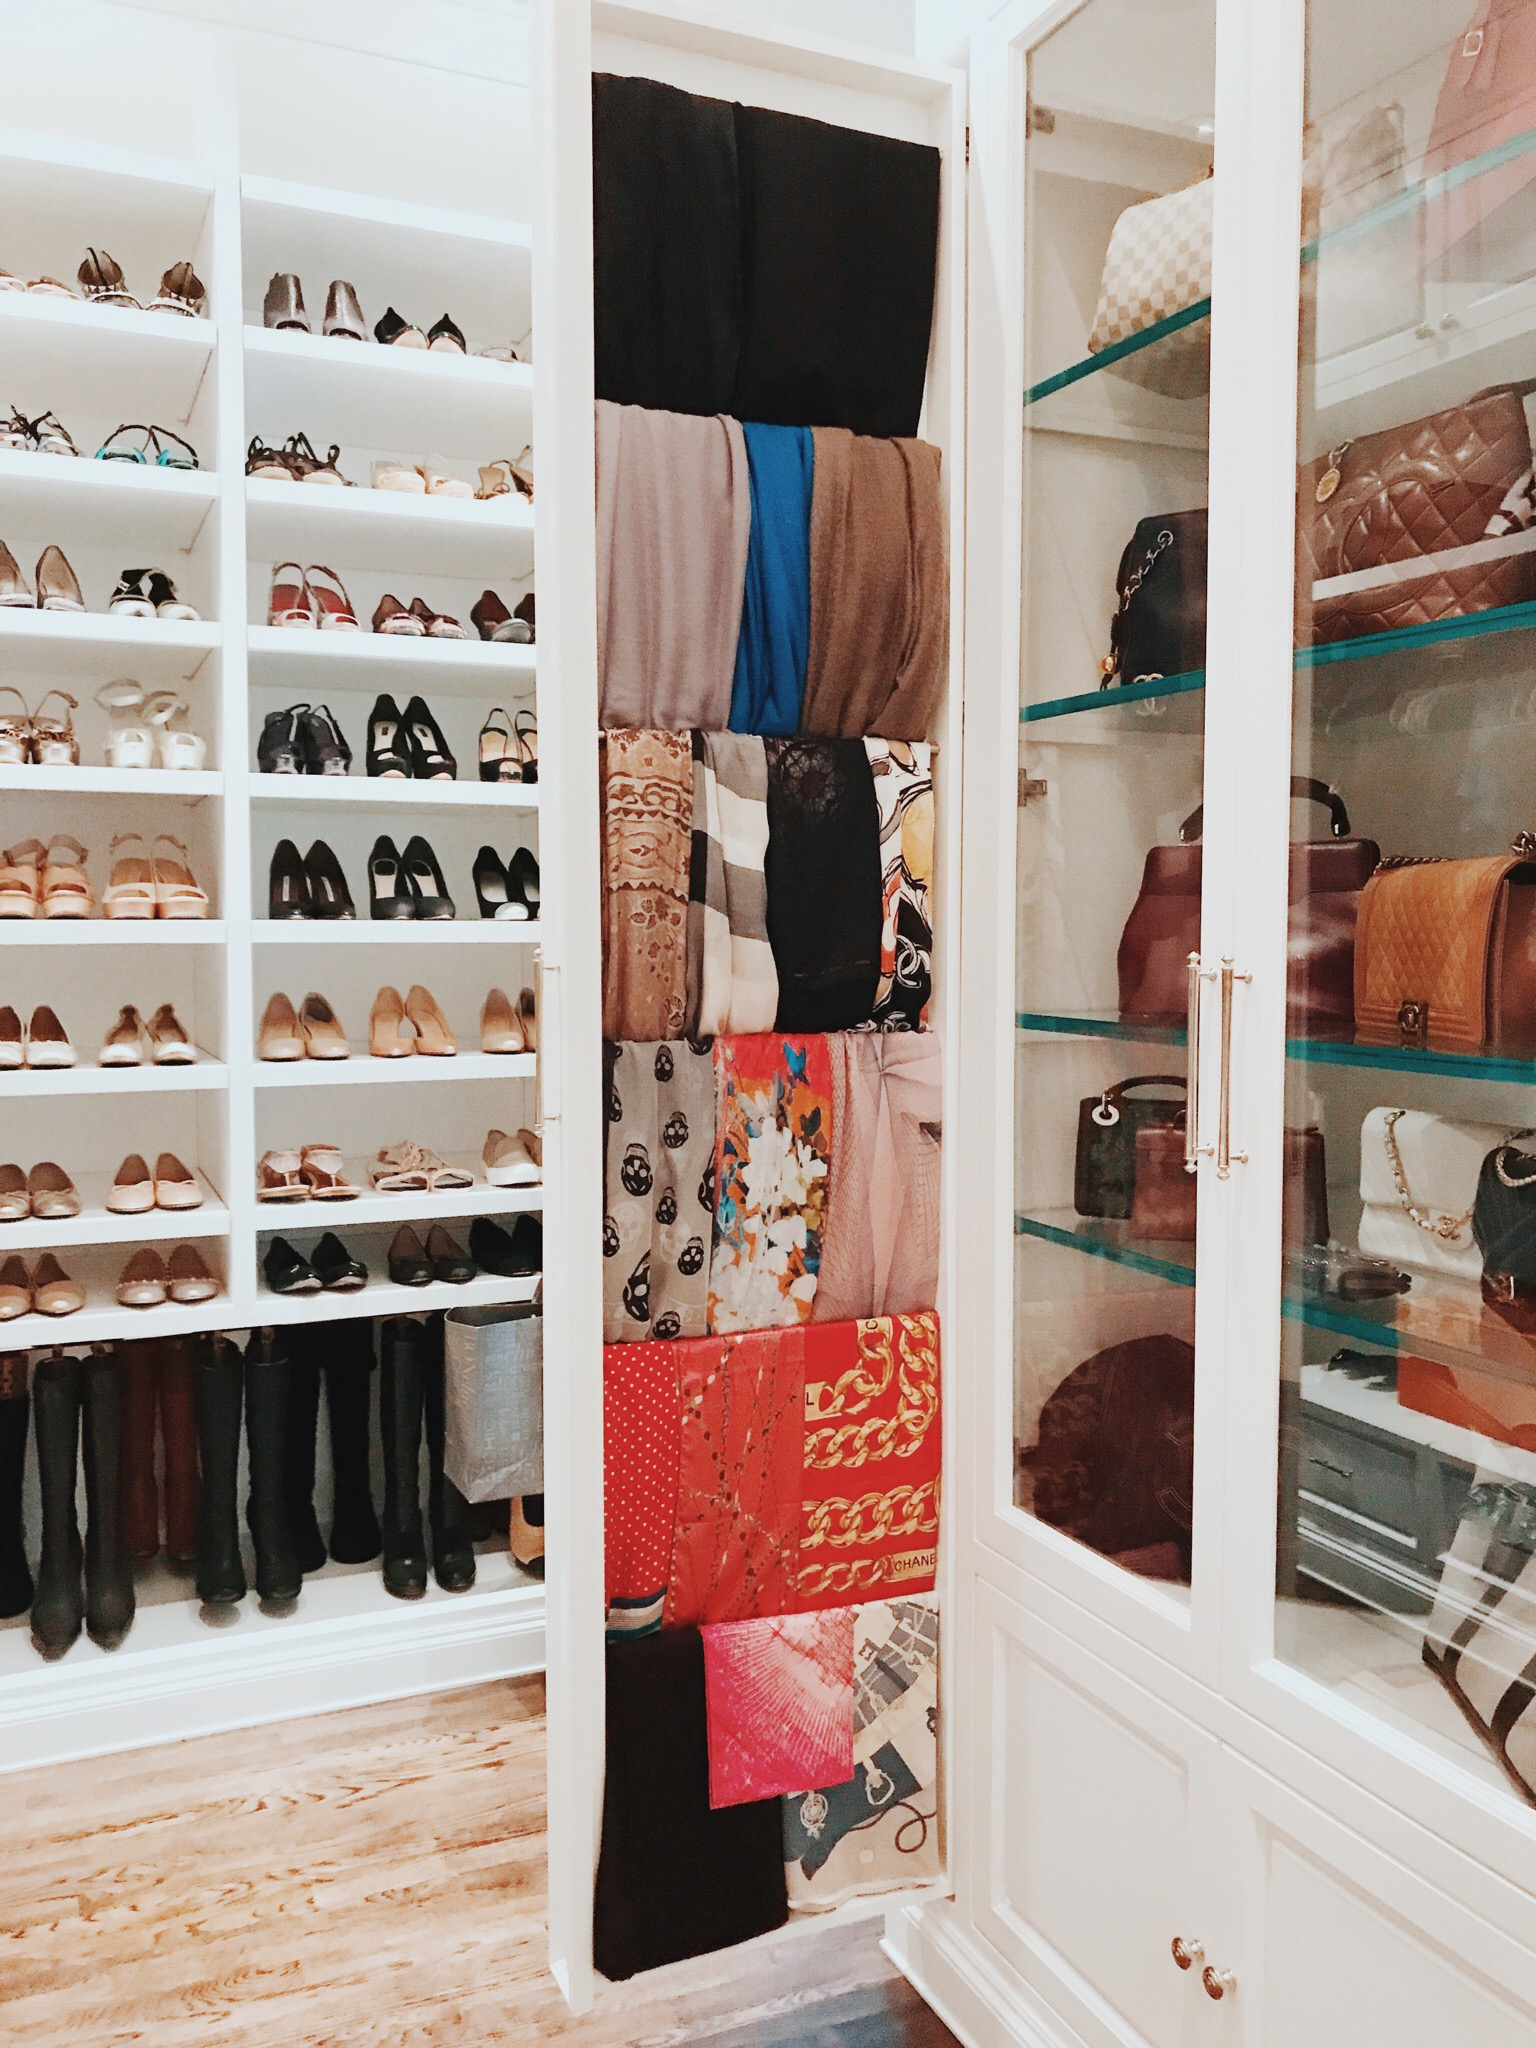 PULL-OUT CABINETS  -- IT MAY SEEM LIKE A SIMPLE SOLUTION, BUT A PULL-OUT CABINET CAN BE A CREATIVE WAY TO STORE ANY COLLECTION WITHOUT EATING UP VALUABLE REAL ESTATE IN THE CLOSET!